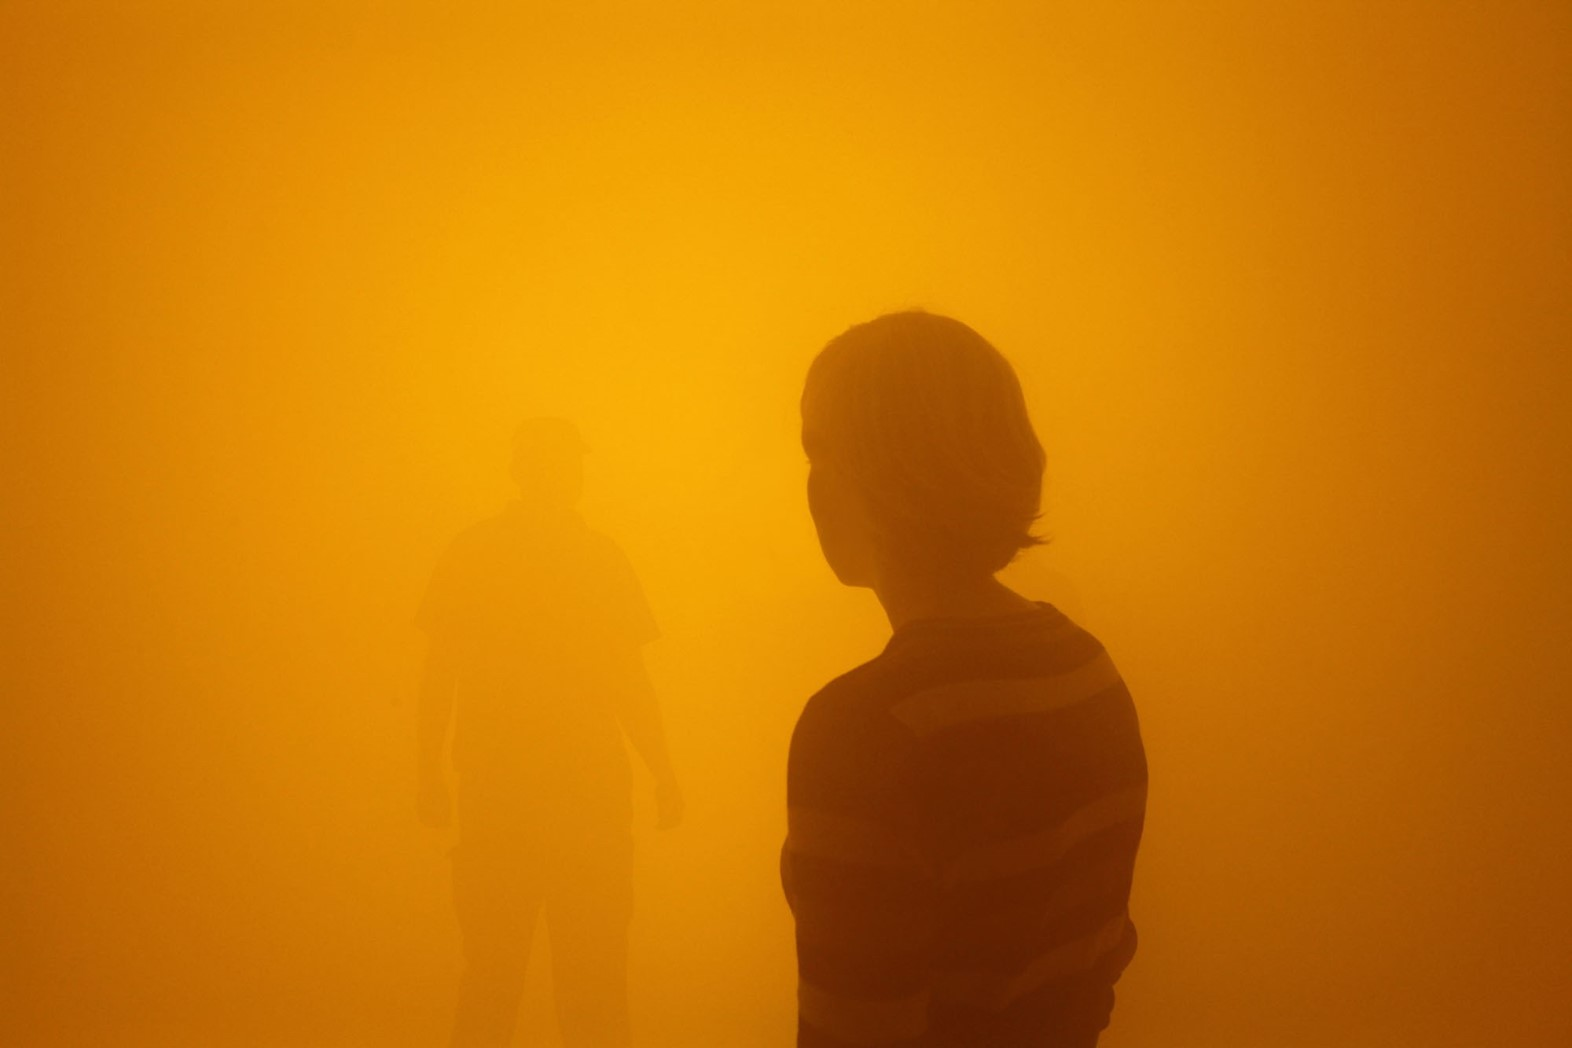 Olafur Eliasson wants you to see, hear, touch, smell & taste his art